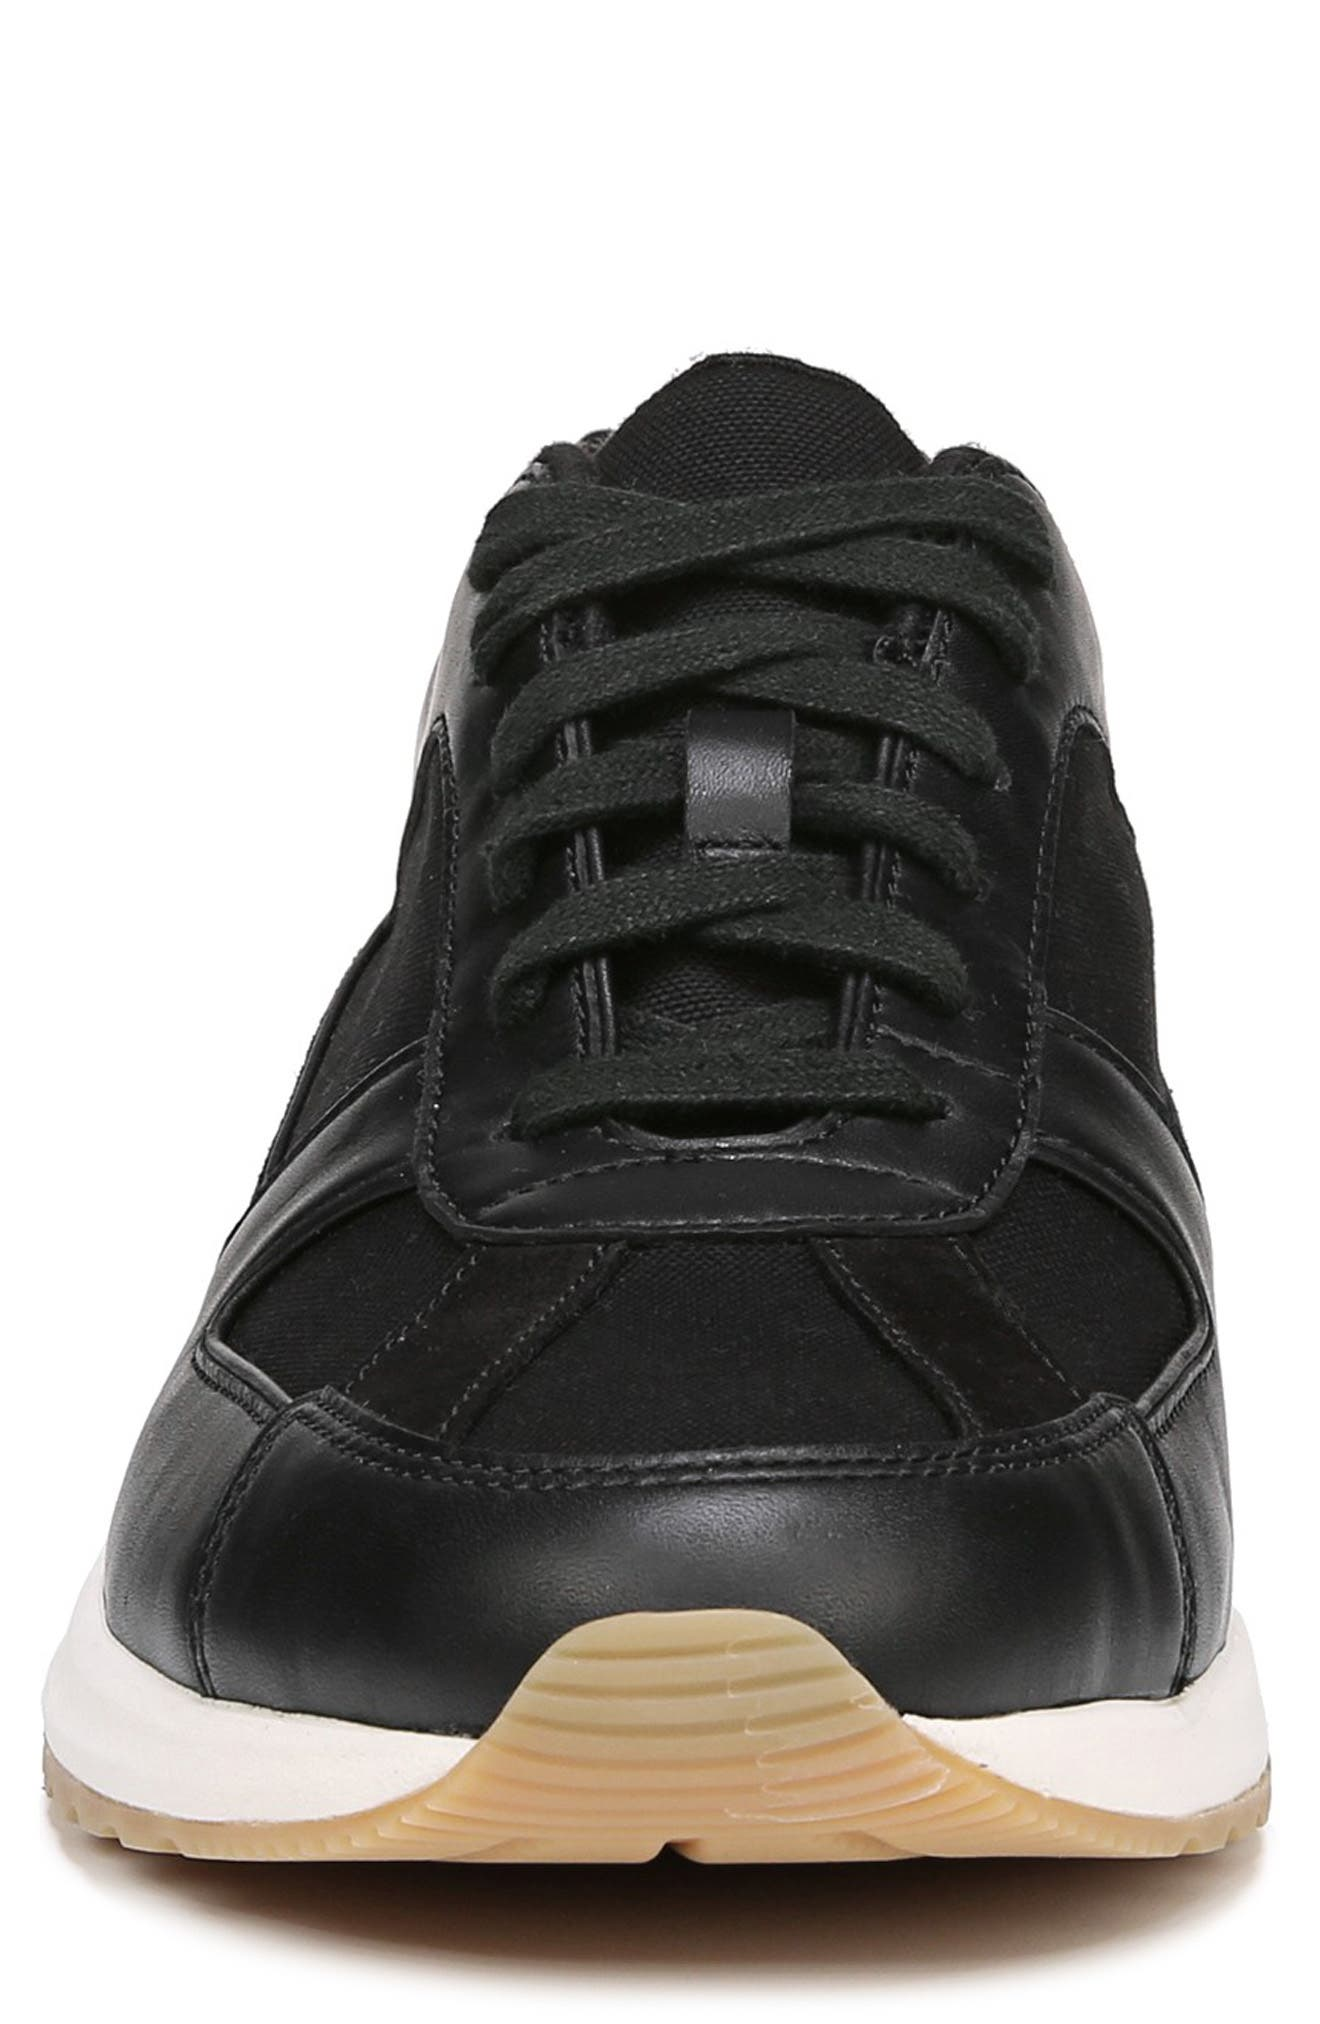 Griffin Sneaker,                             Alternate thumbnail 4, color,                             BLACK/ MADDOX